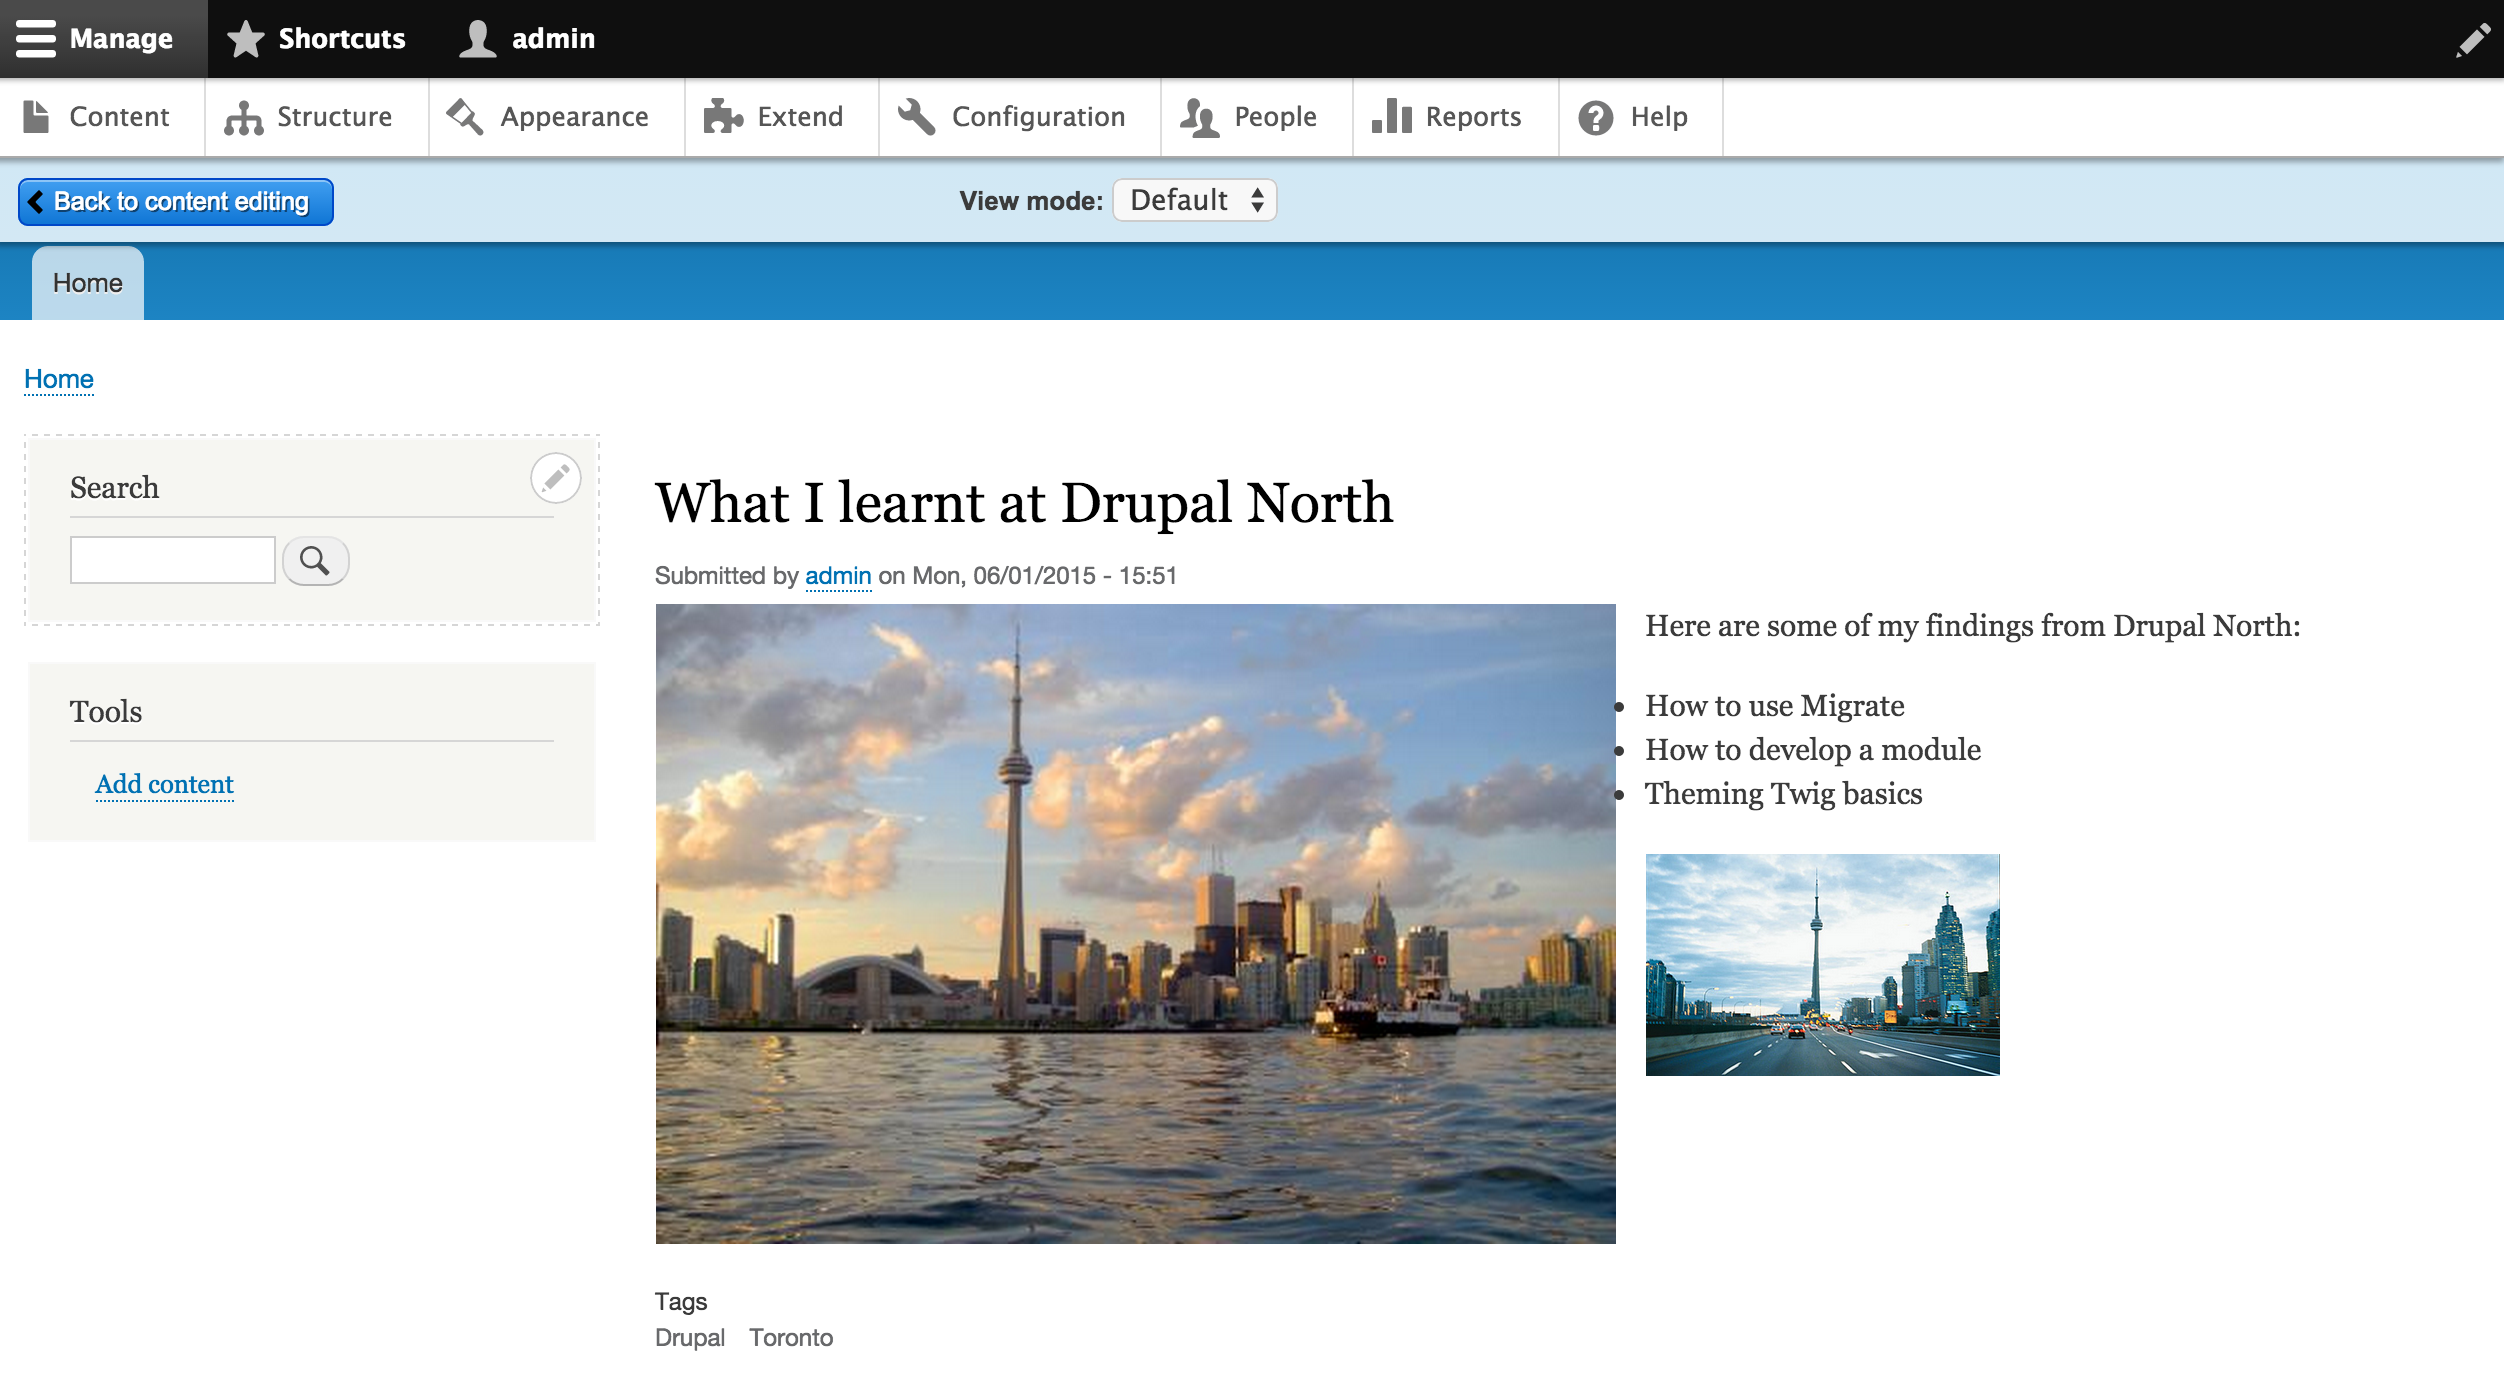 Screenshot of the preview interface in Drupal 8